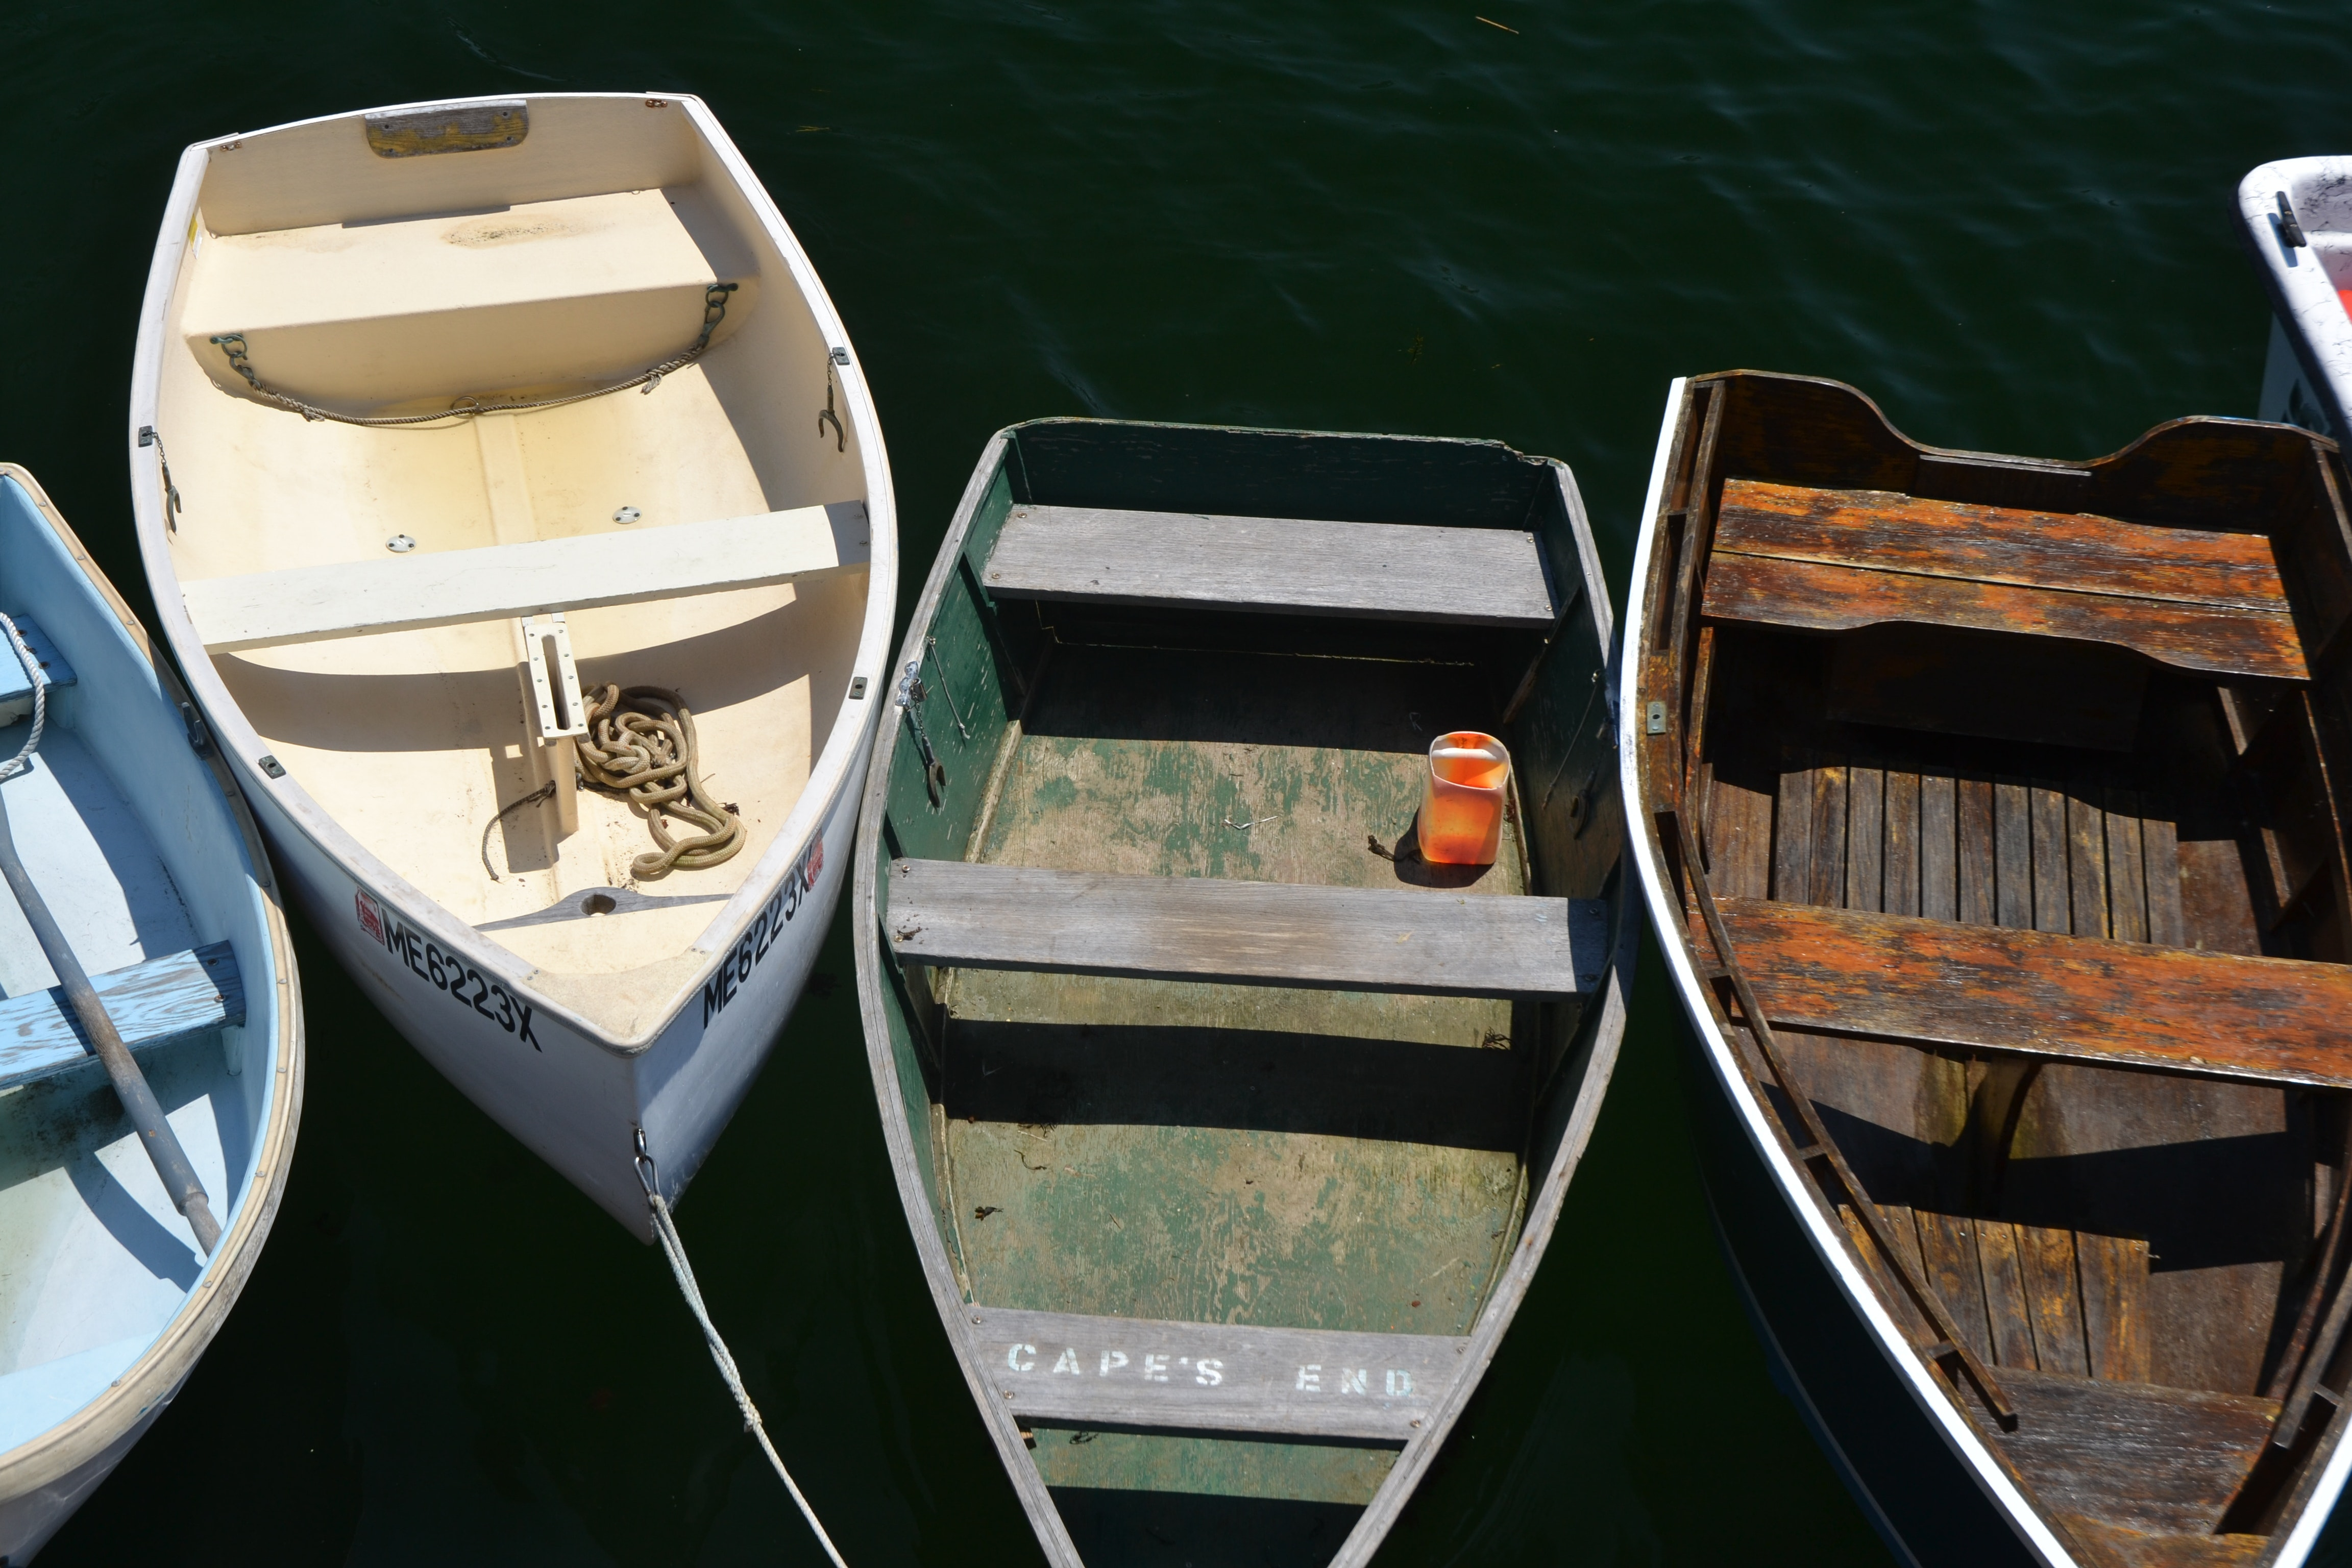 Aerial View Black Wooden Row Boat On Body Of Water  C2 B7 Free